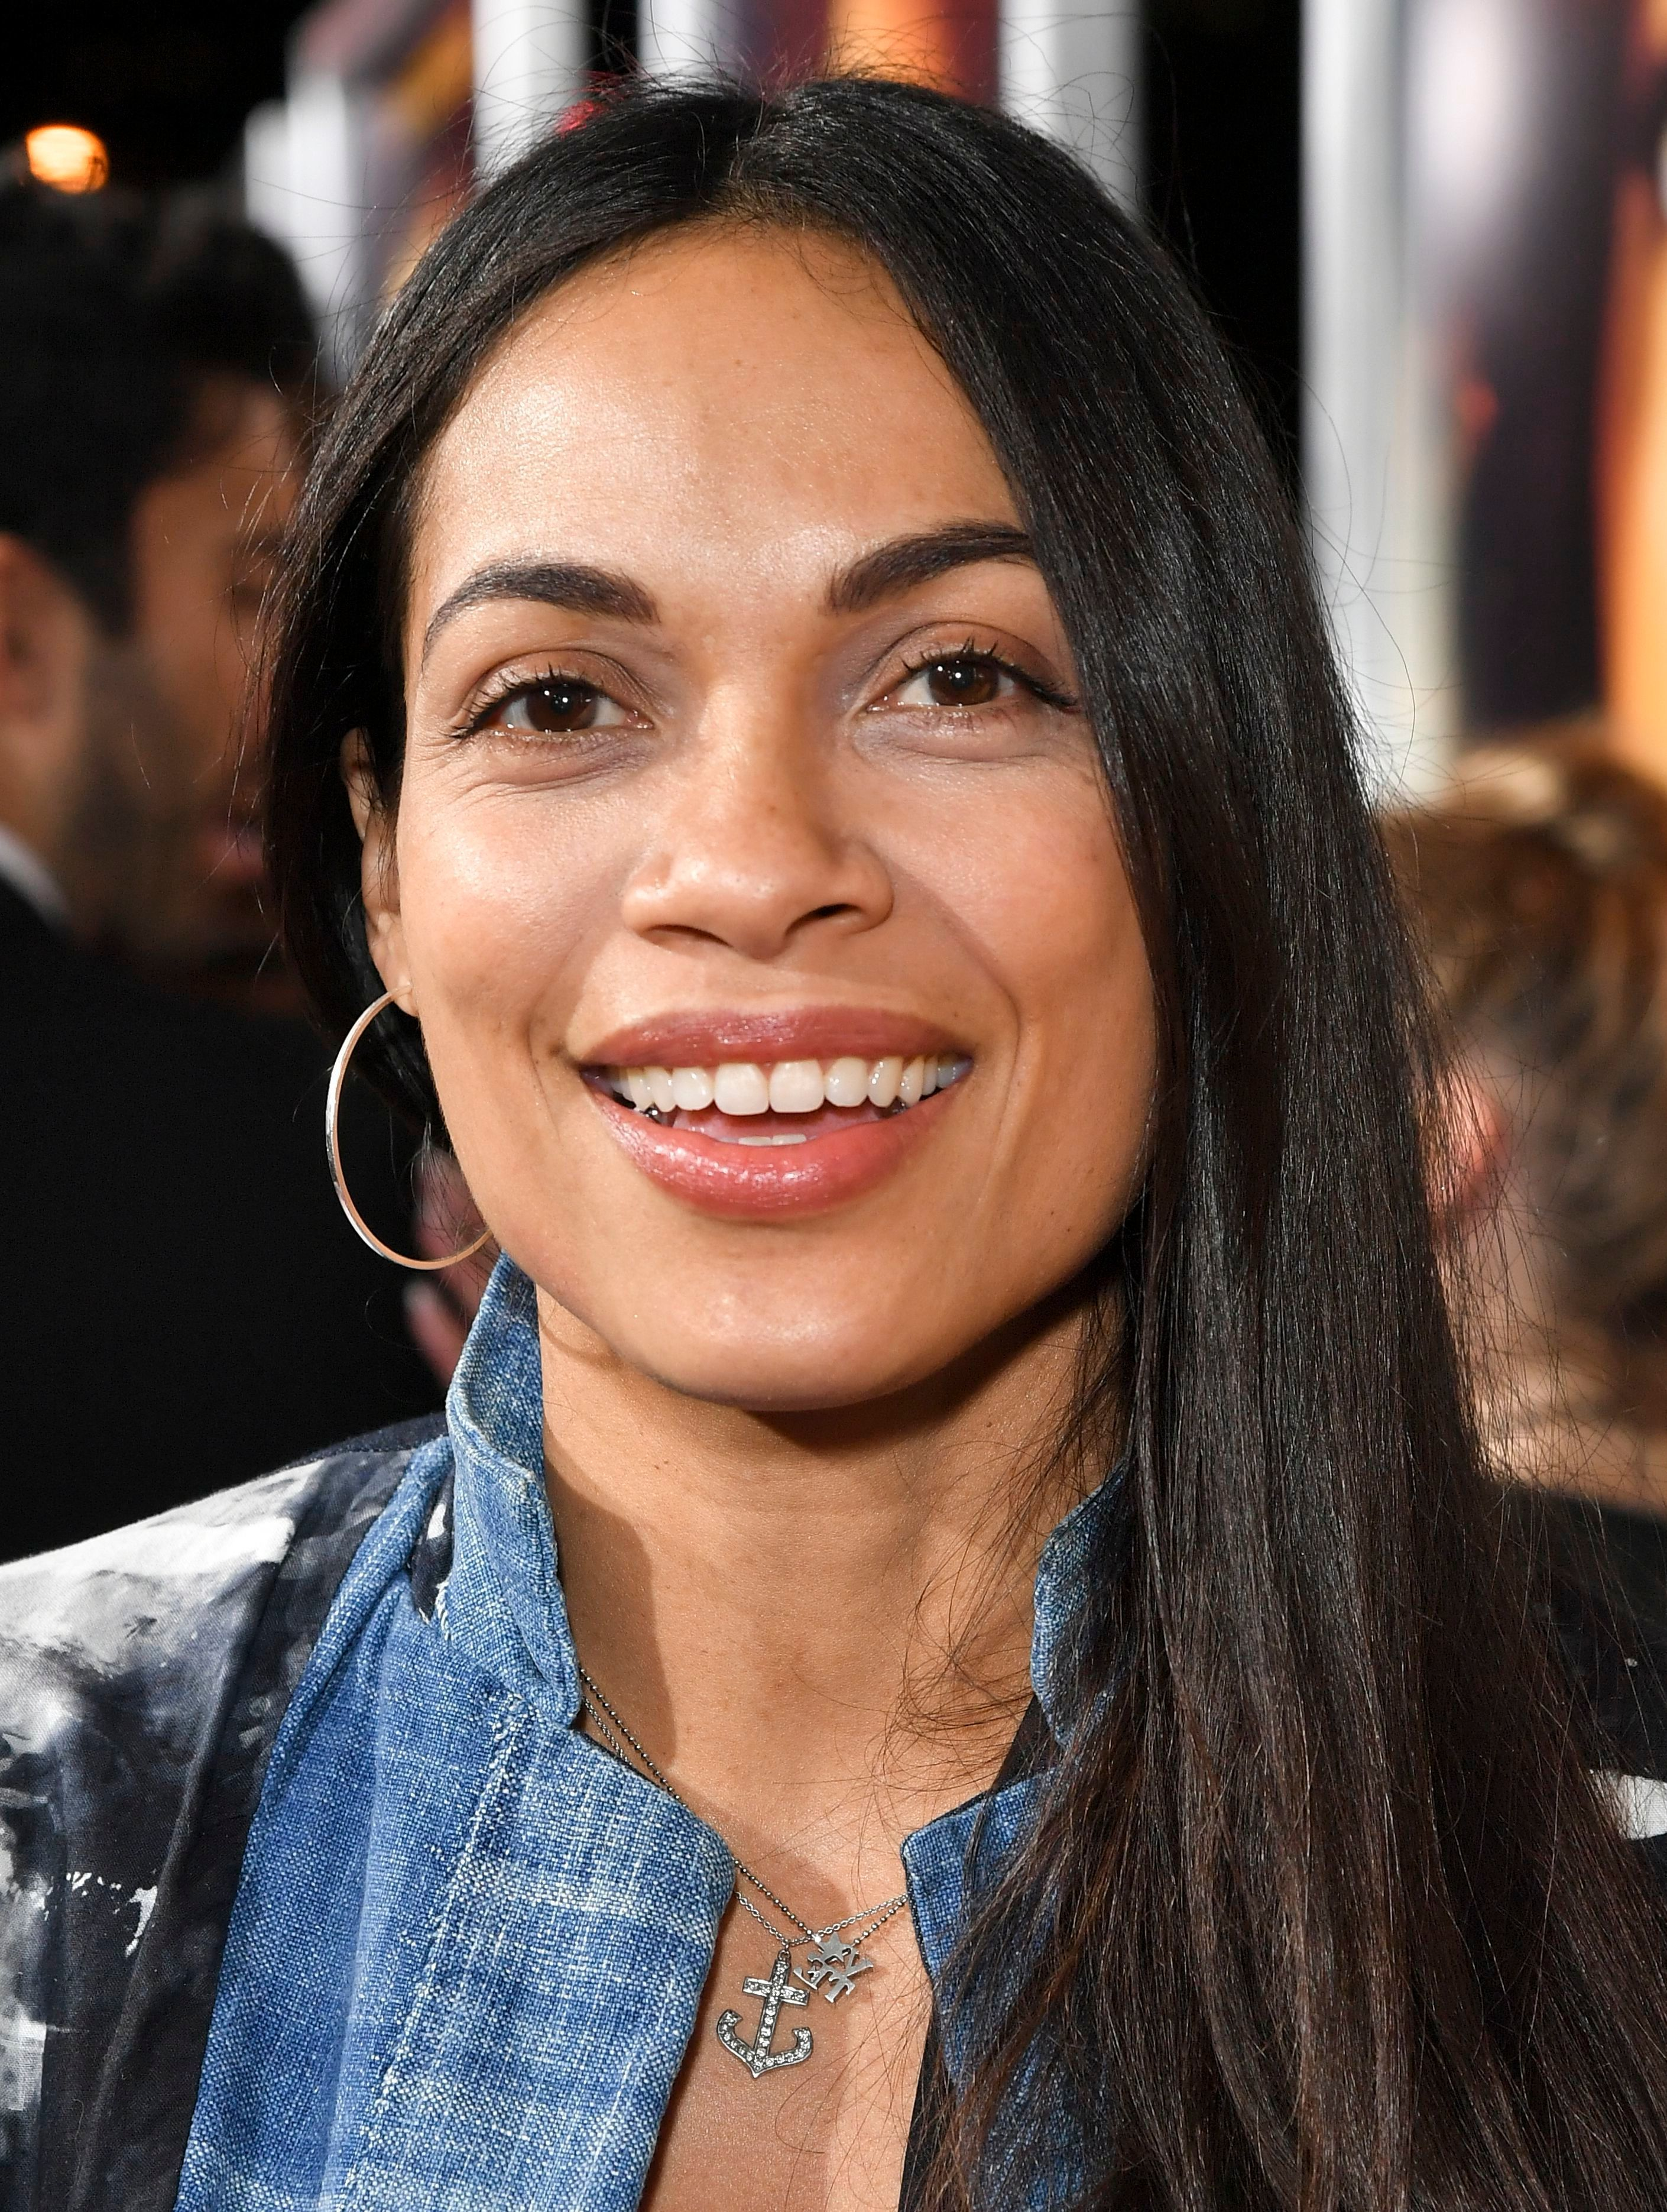 """Rosario Dawson attends the """"Miss Bala"""" premiere in Los Angeles on Jan. 30, 2019."""